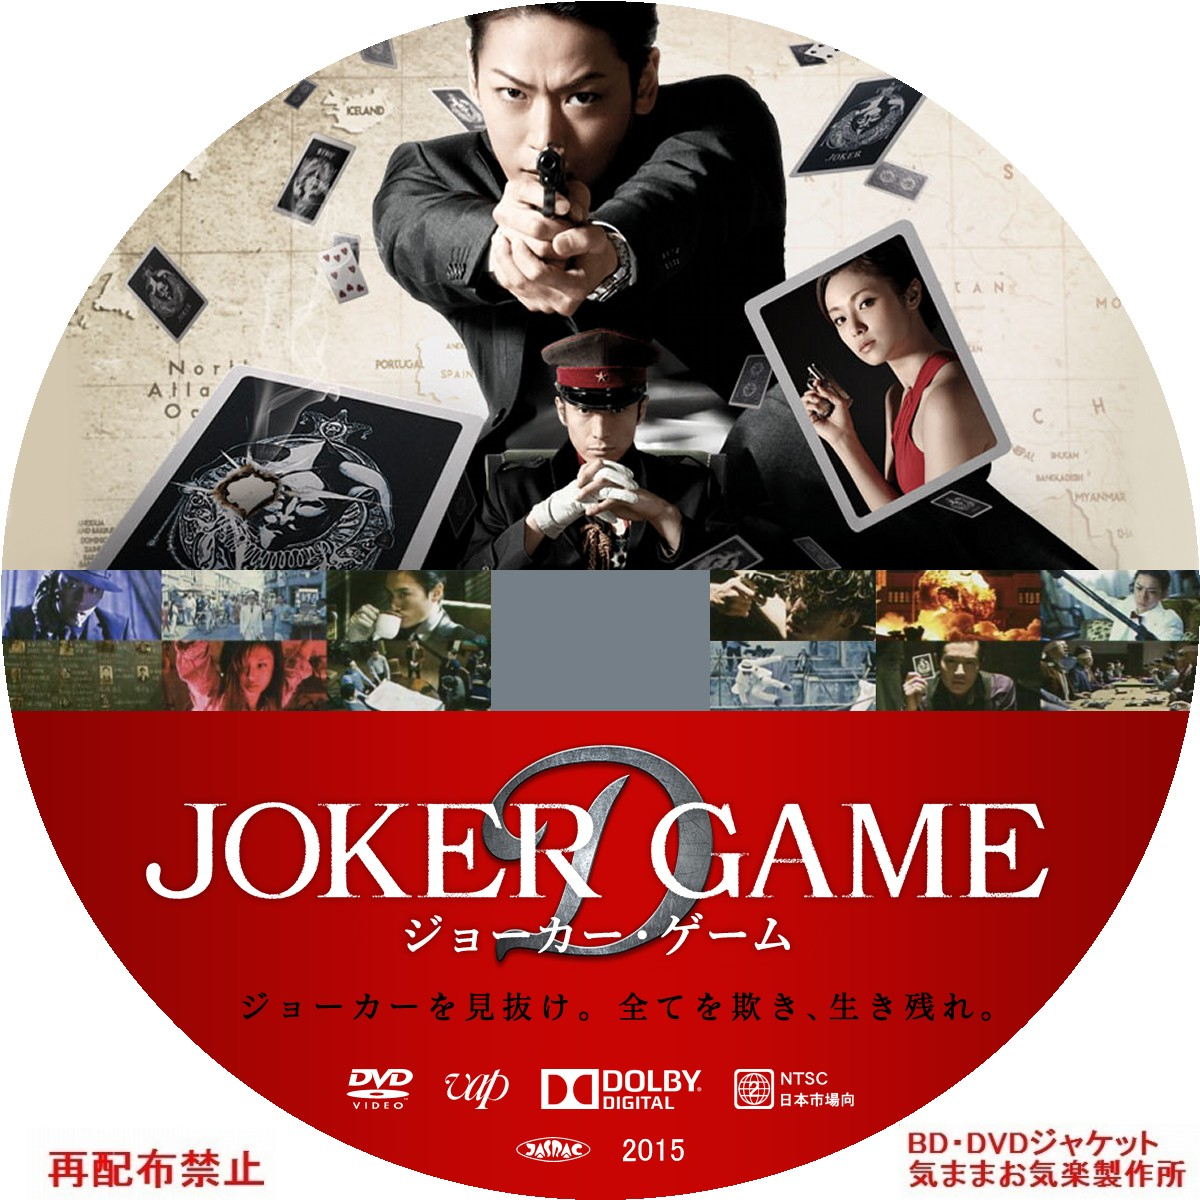 Joker_Game_DVD.jpg